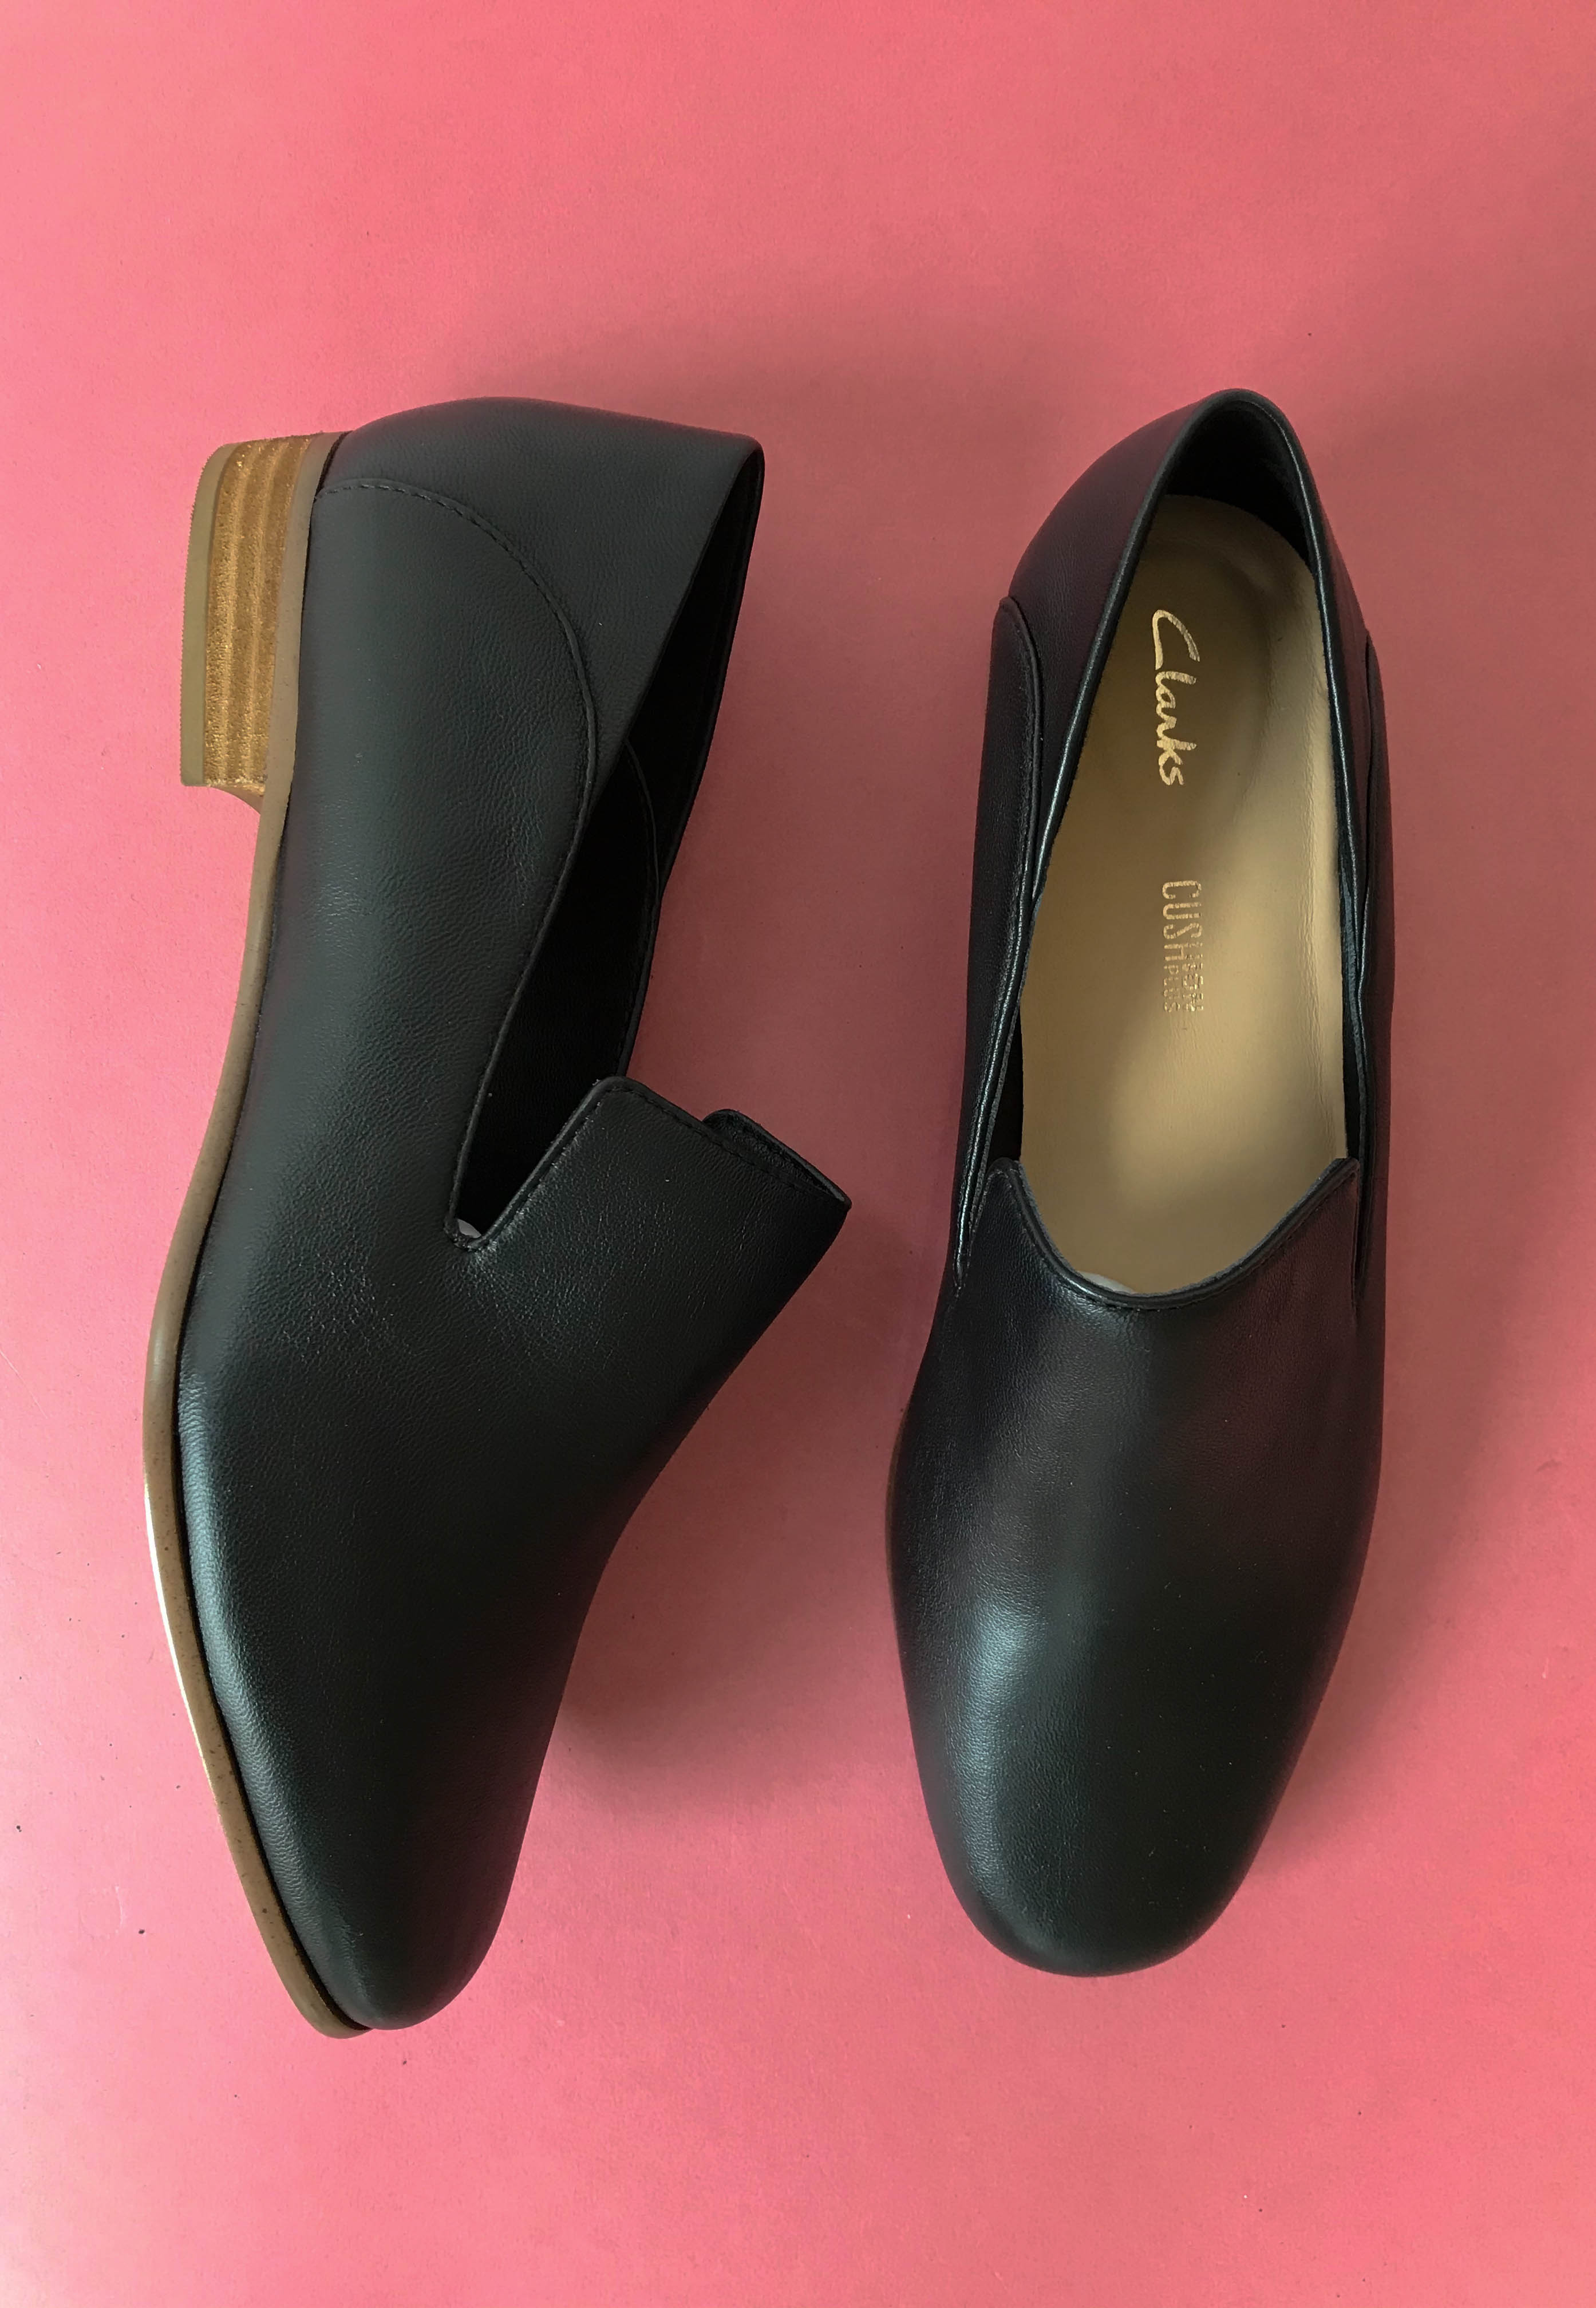 clarks flat shoes